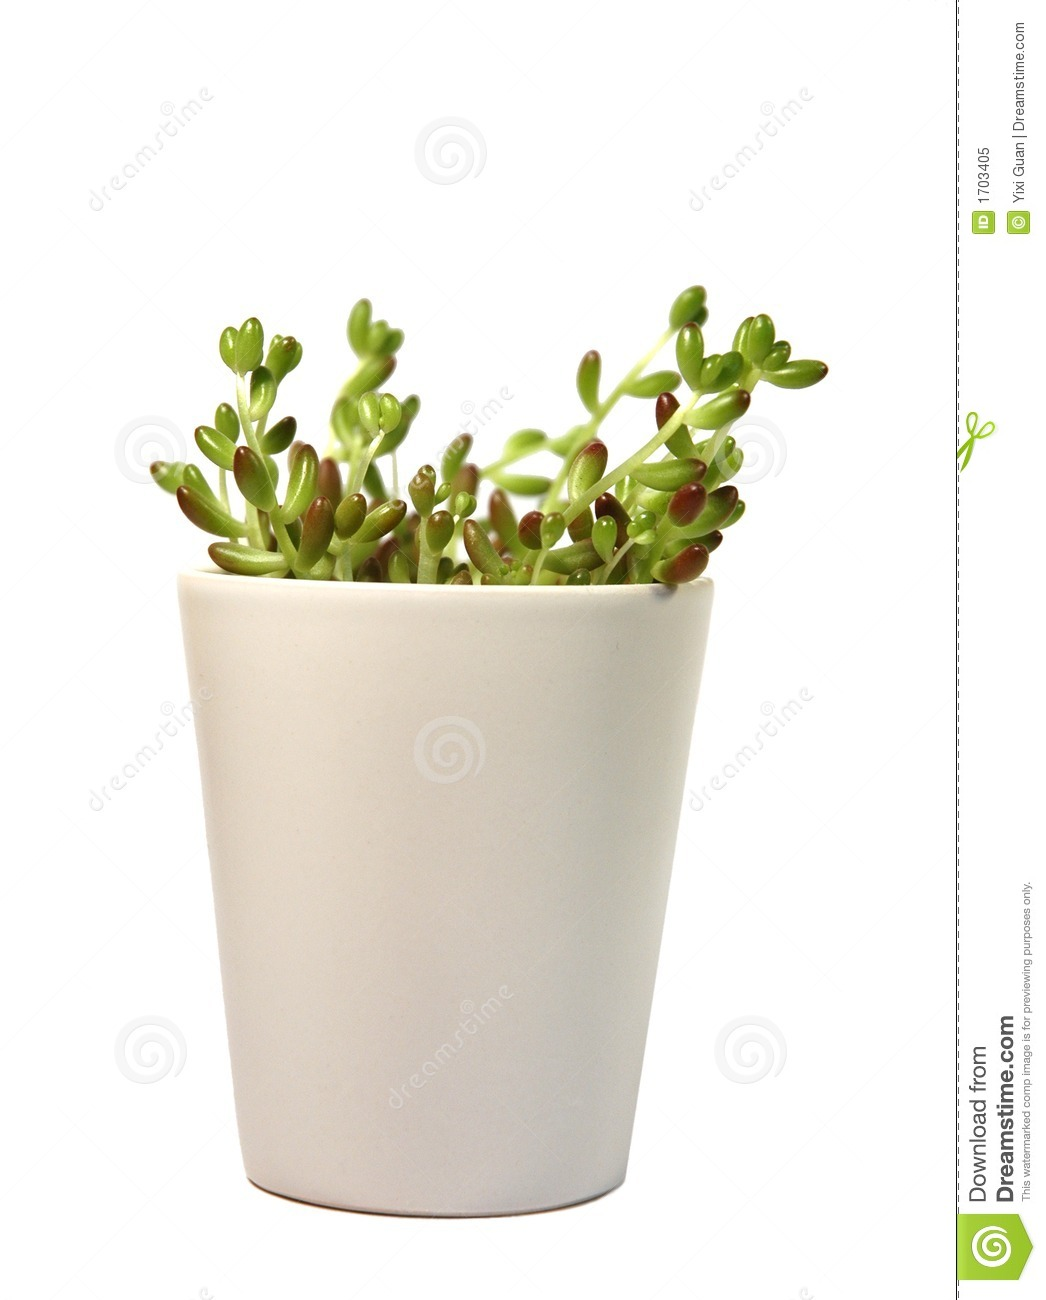 Green Plant In White Flowerpot Royalty Free Stock Photo